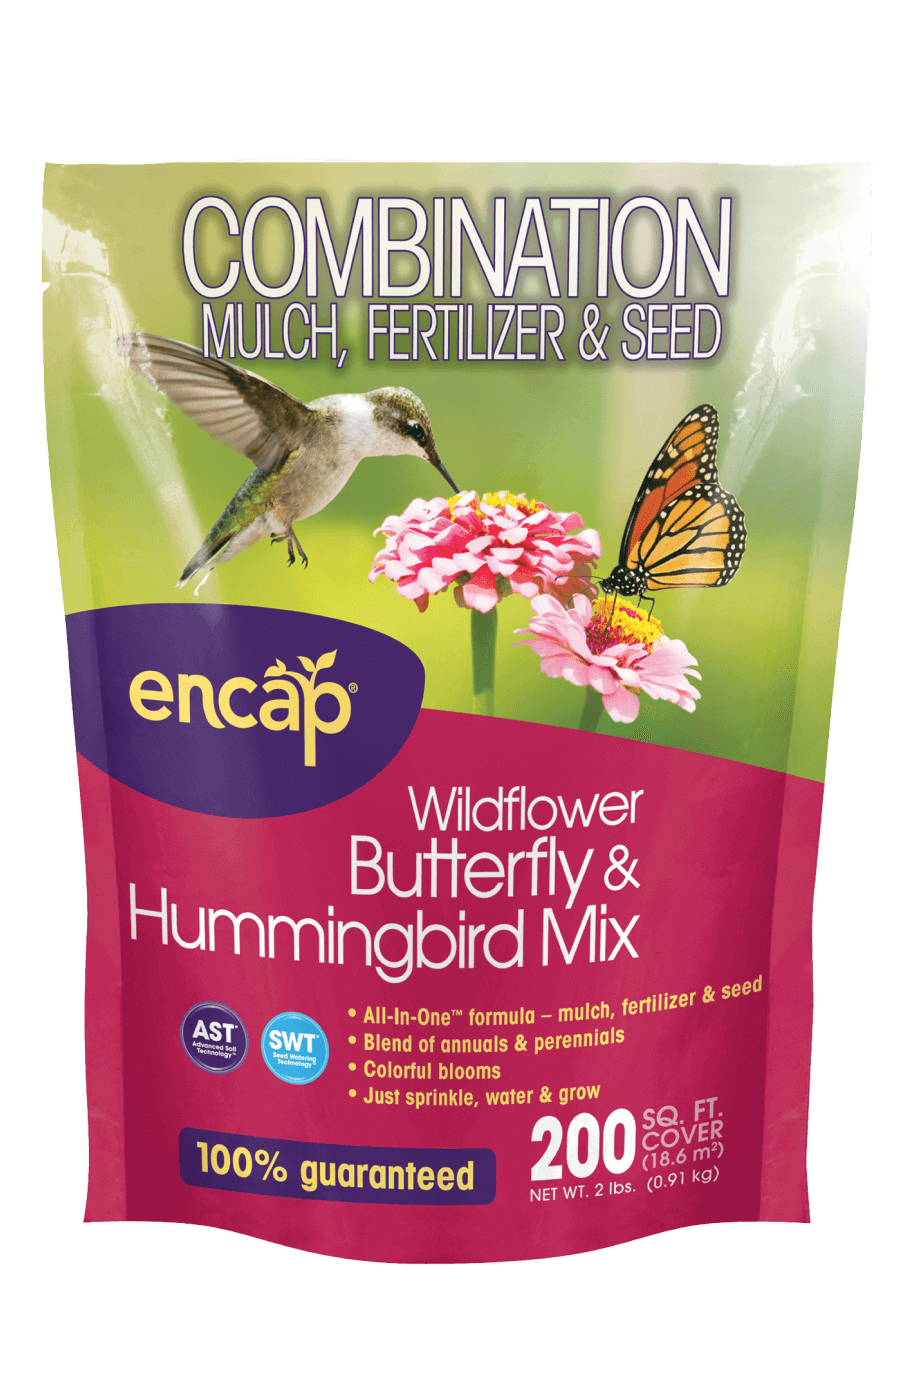 Wildflower Bullterfly & Hummingbird Mix Package